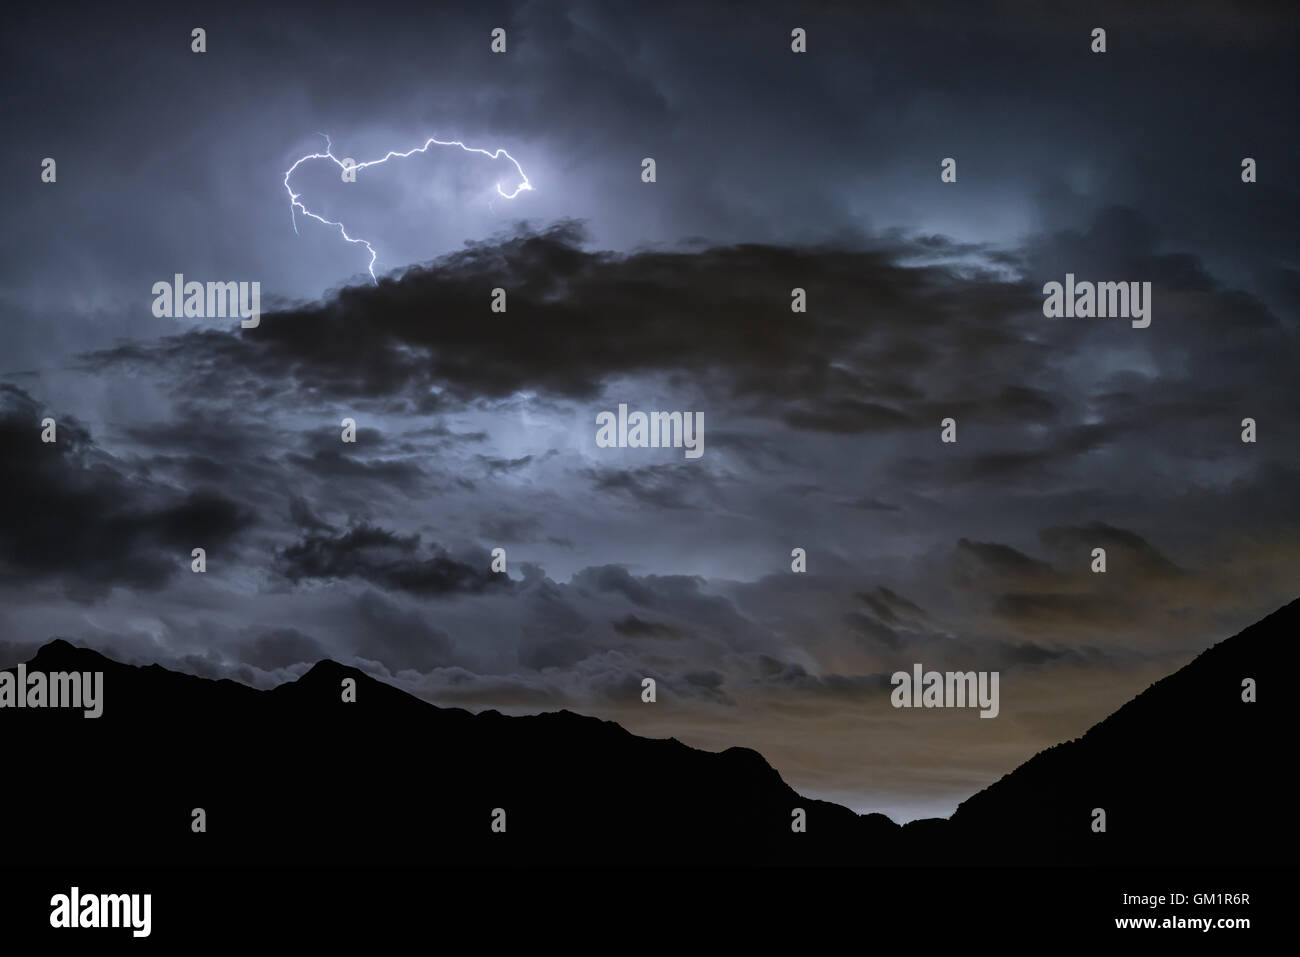 Lightning storm seen from St. Vincent, Aosta Valley, Italy, Alps, Europe, EU - Stock Image